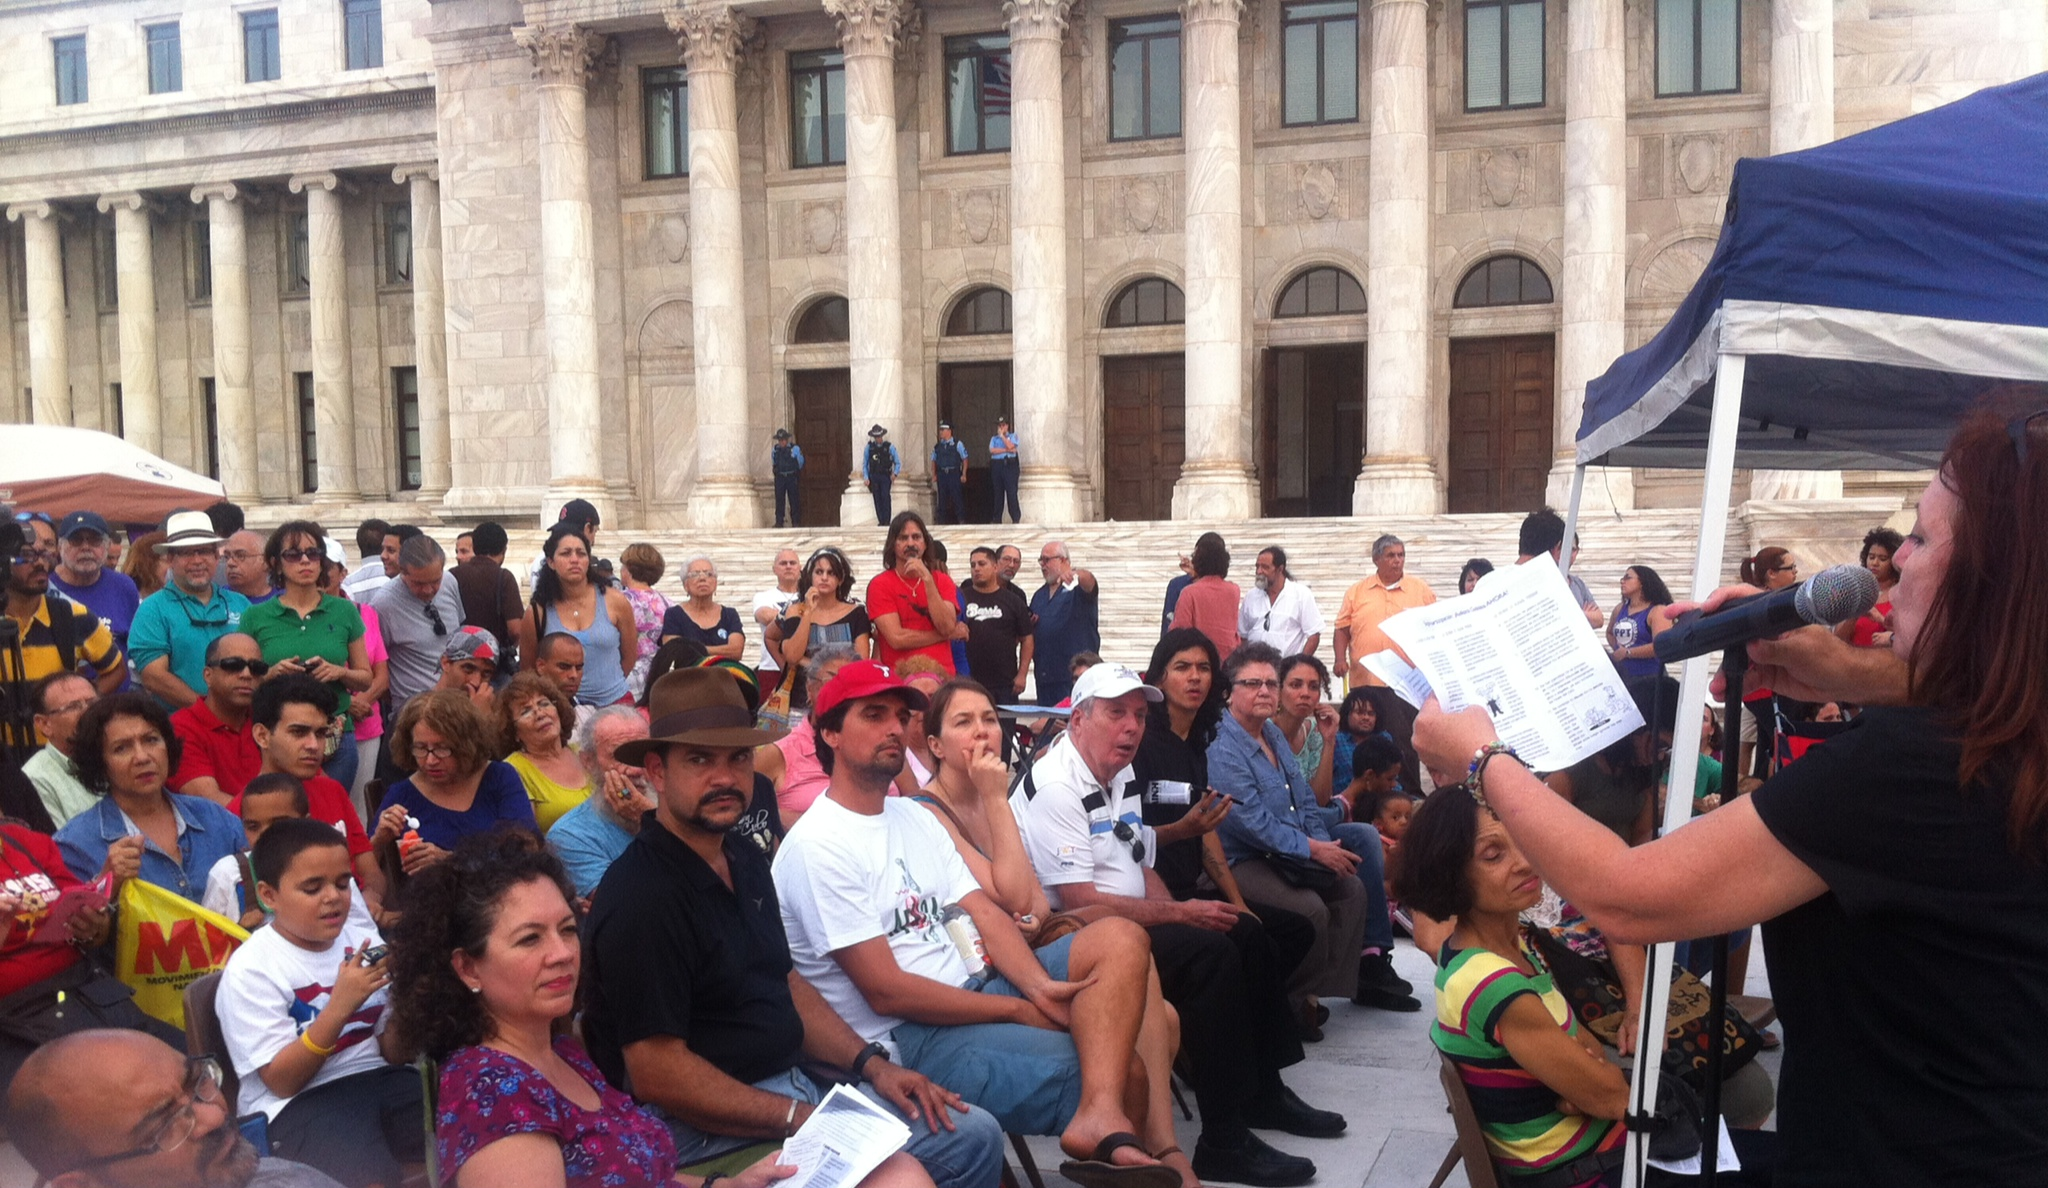 Photo by author.